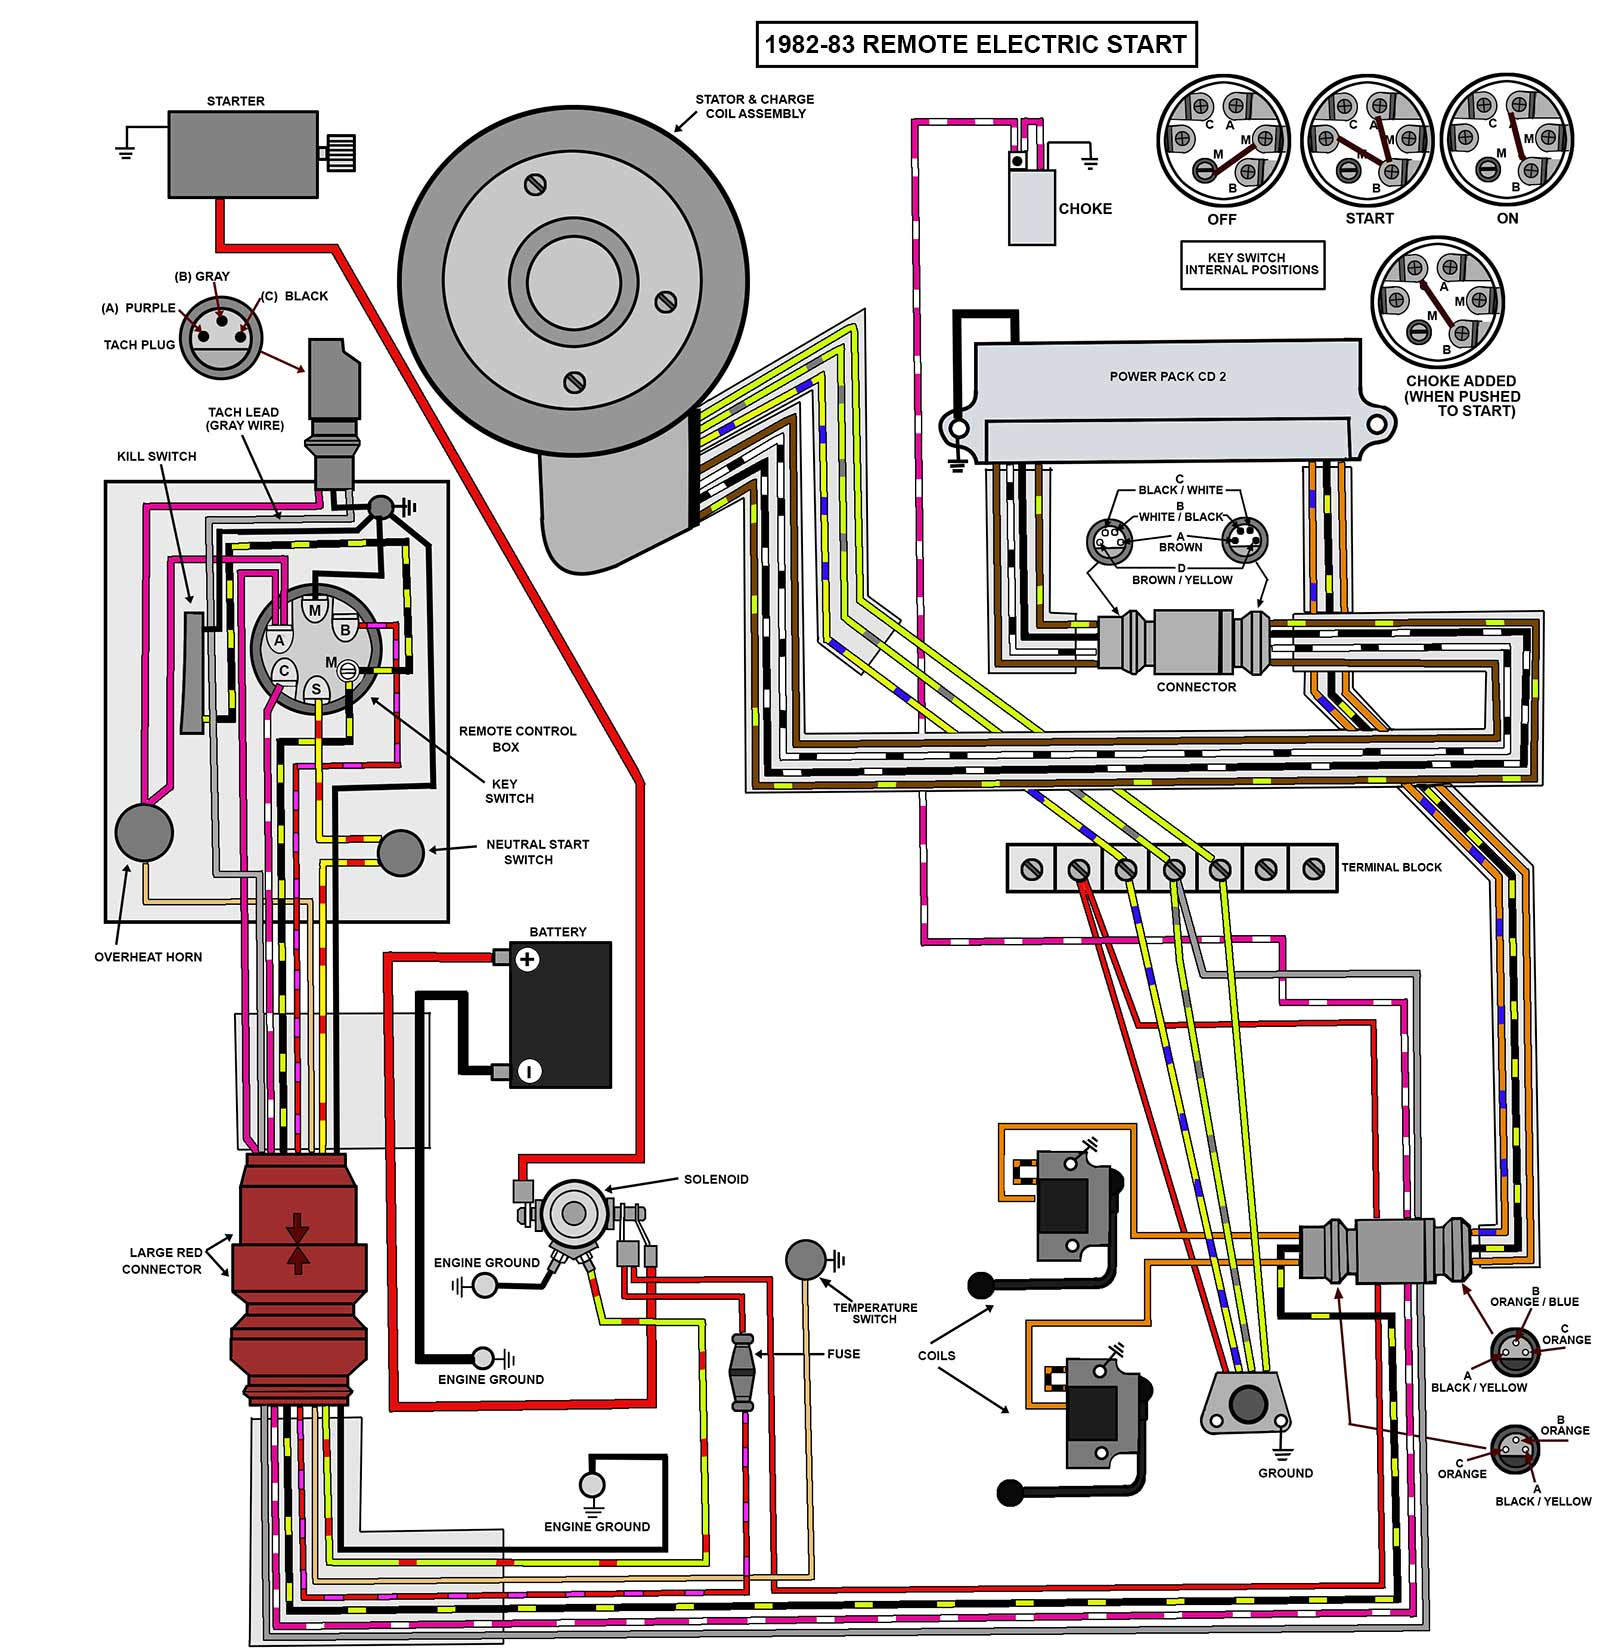 25_35_82 83_elec remote hp wiring diagram wiring harness diagram \u2022 wiring diagrams j Aftermarket Radio Wiring Harness at webbmarketing.co